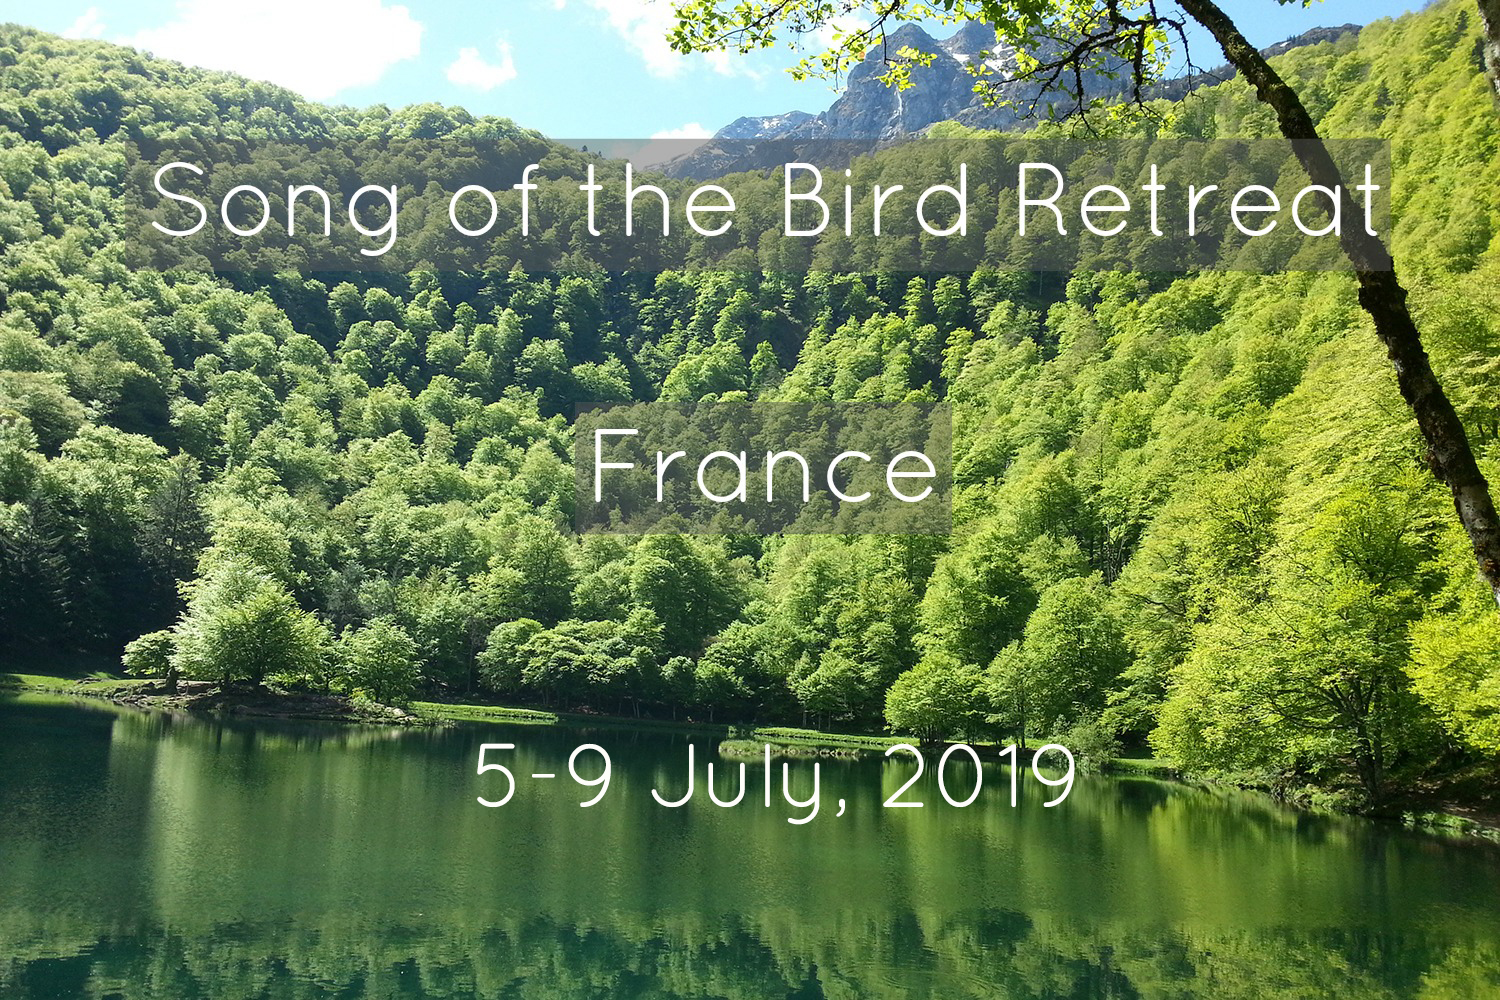 A yoga and dance retreat France elegantly fused into memorable excursions to islands, natural wonders & picturesque villages